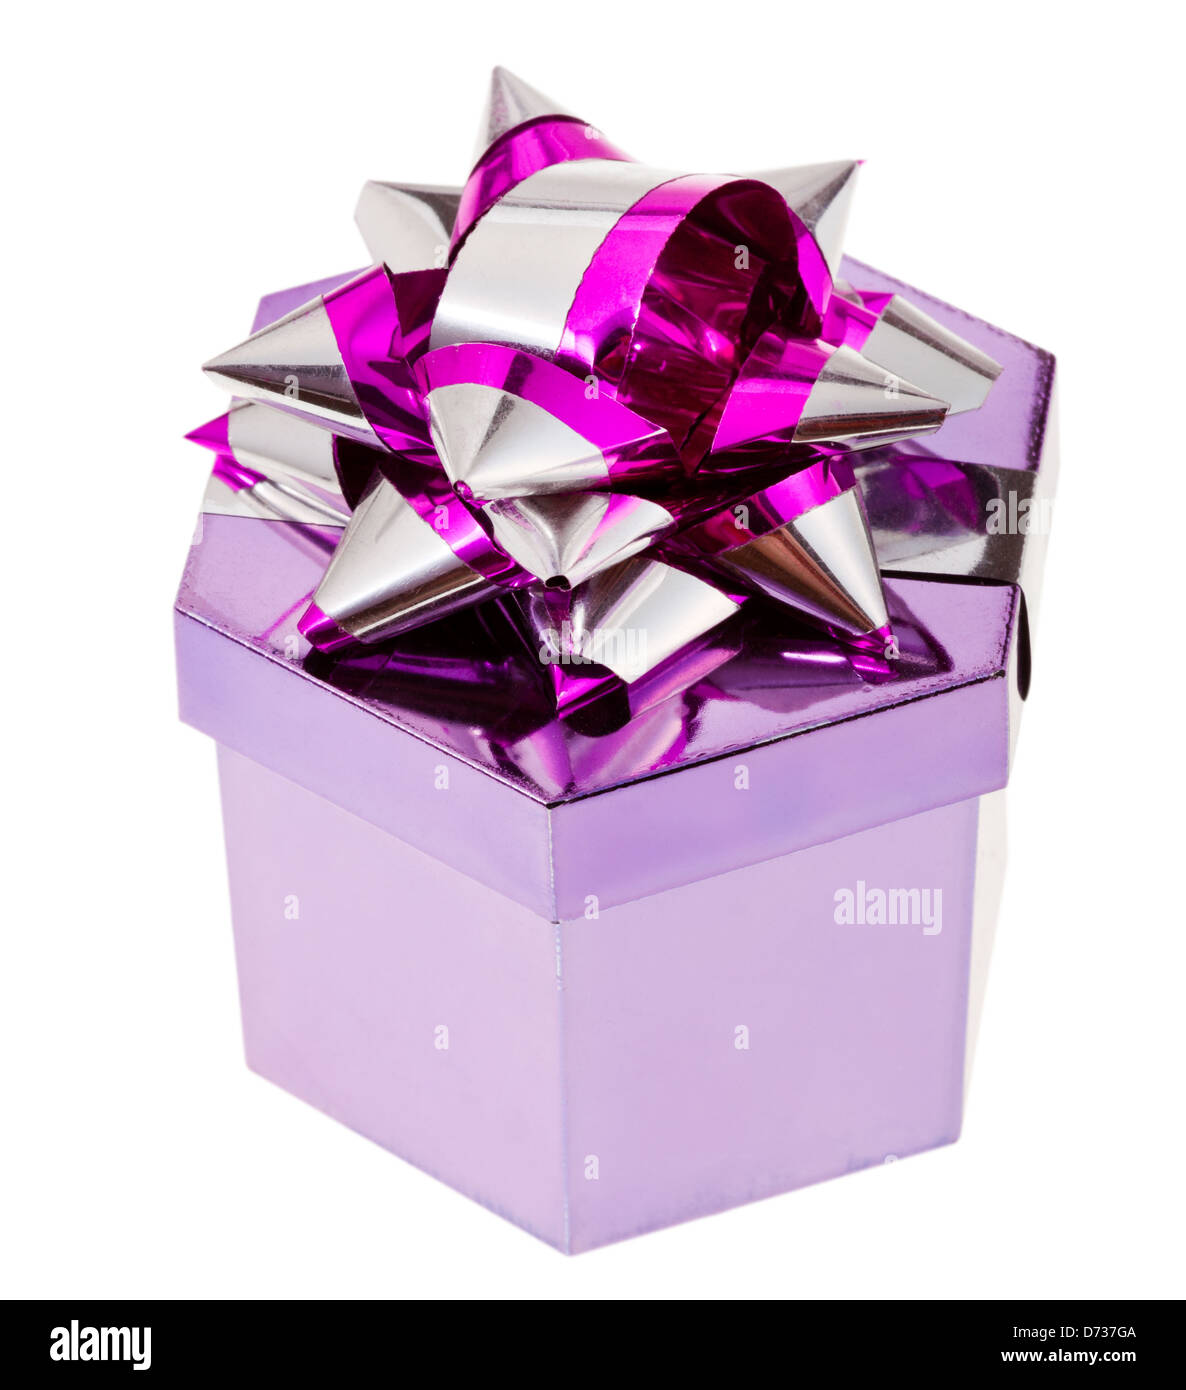 shiny magenta gift box with tinsel knot isolated on white background - Stock Image